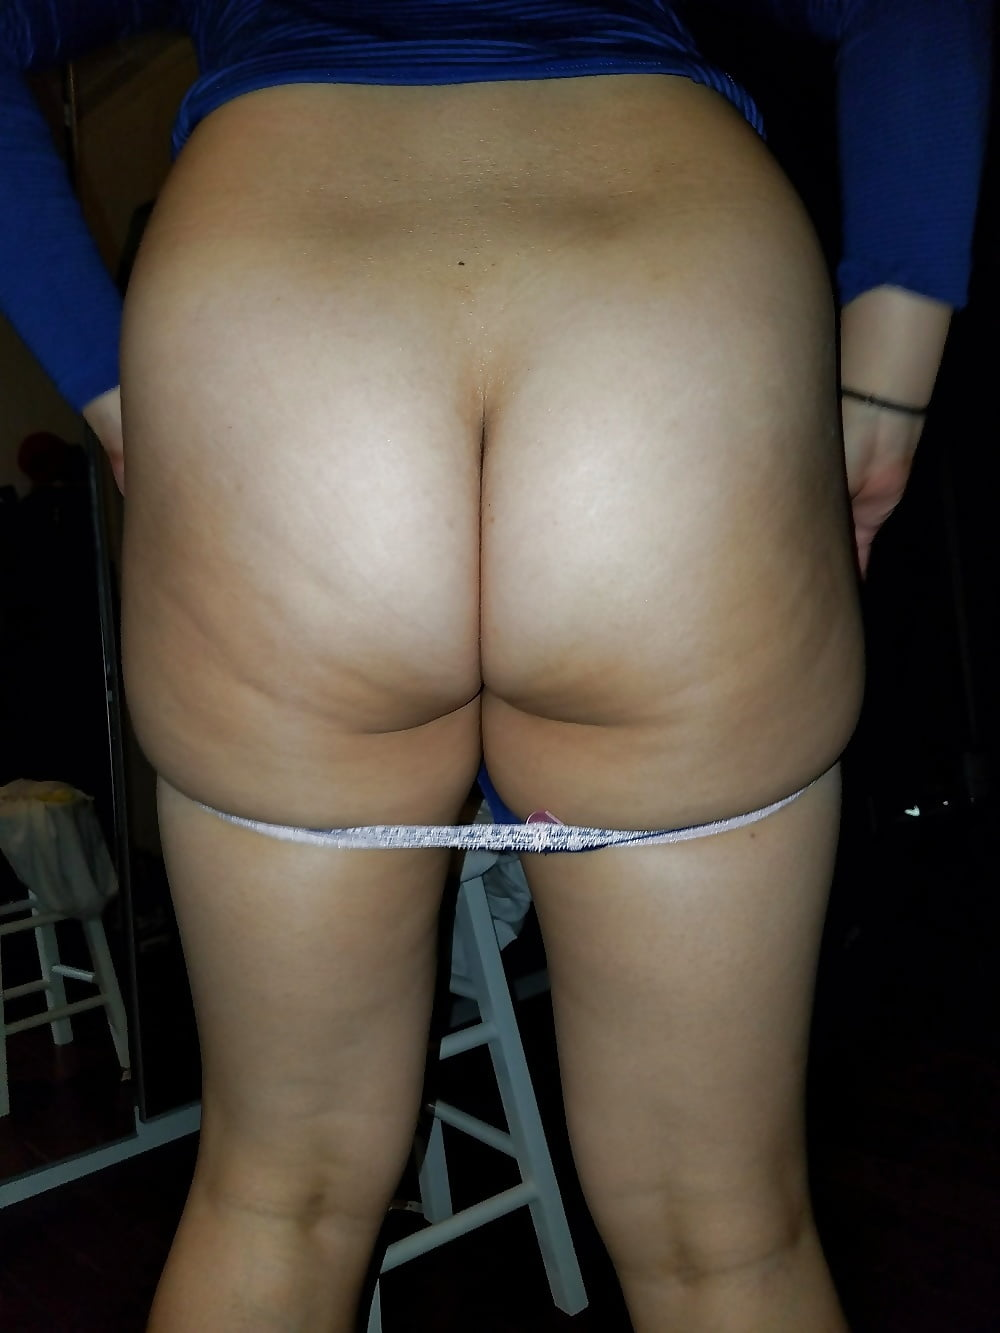 Ass Chubby Porn see and save as this weeks butts ass chubby arse porn pict